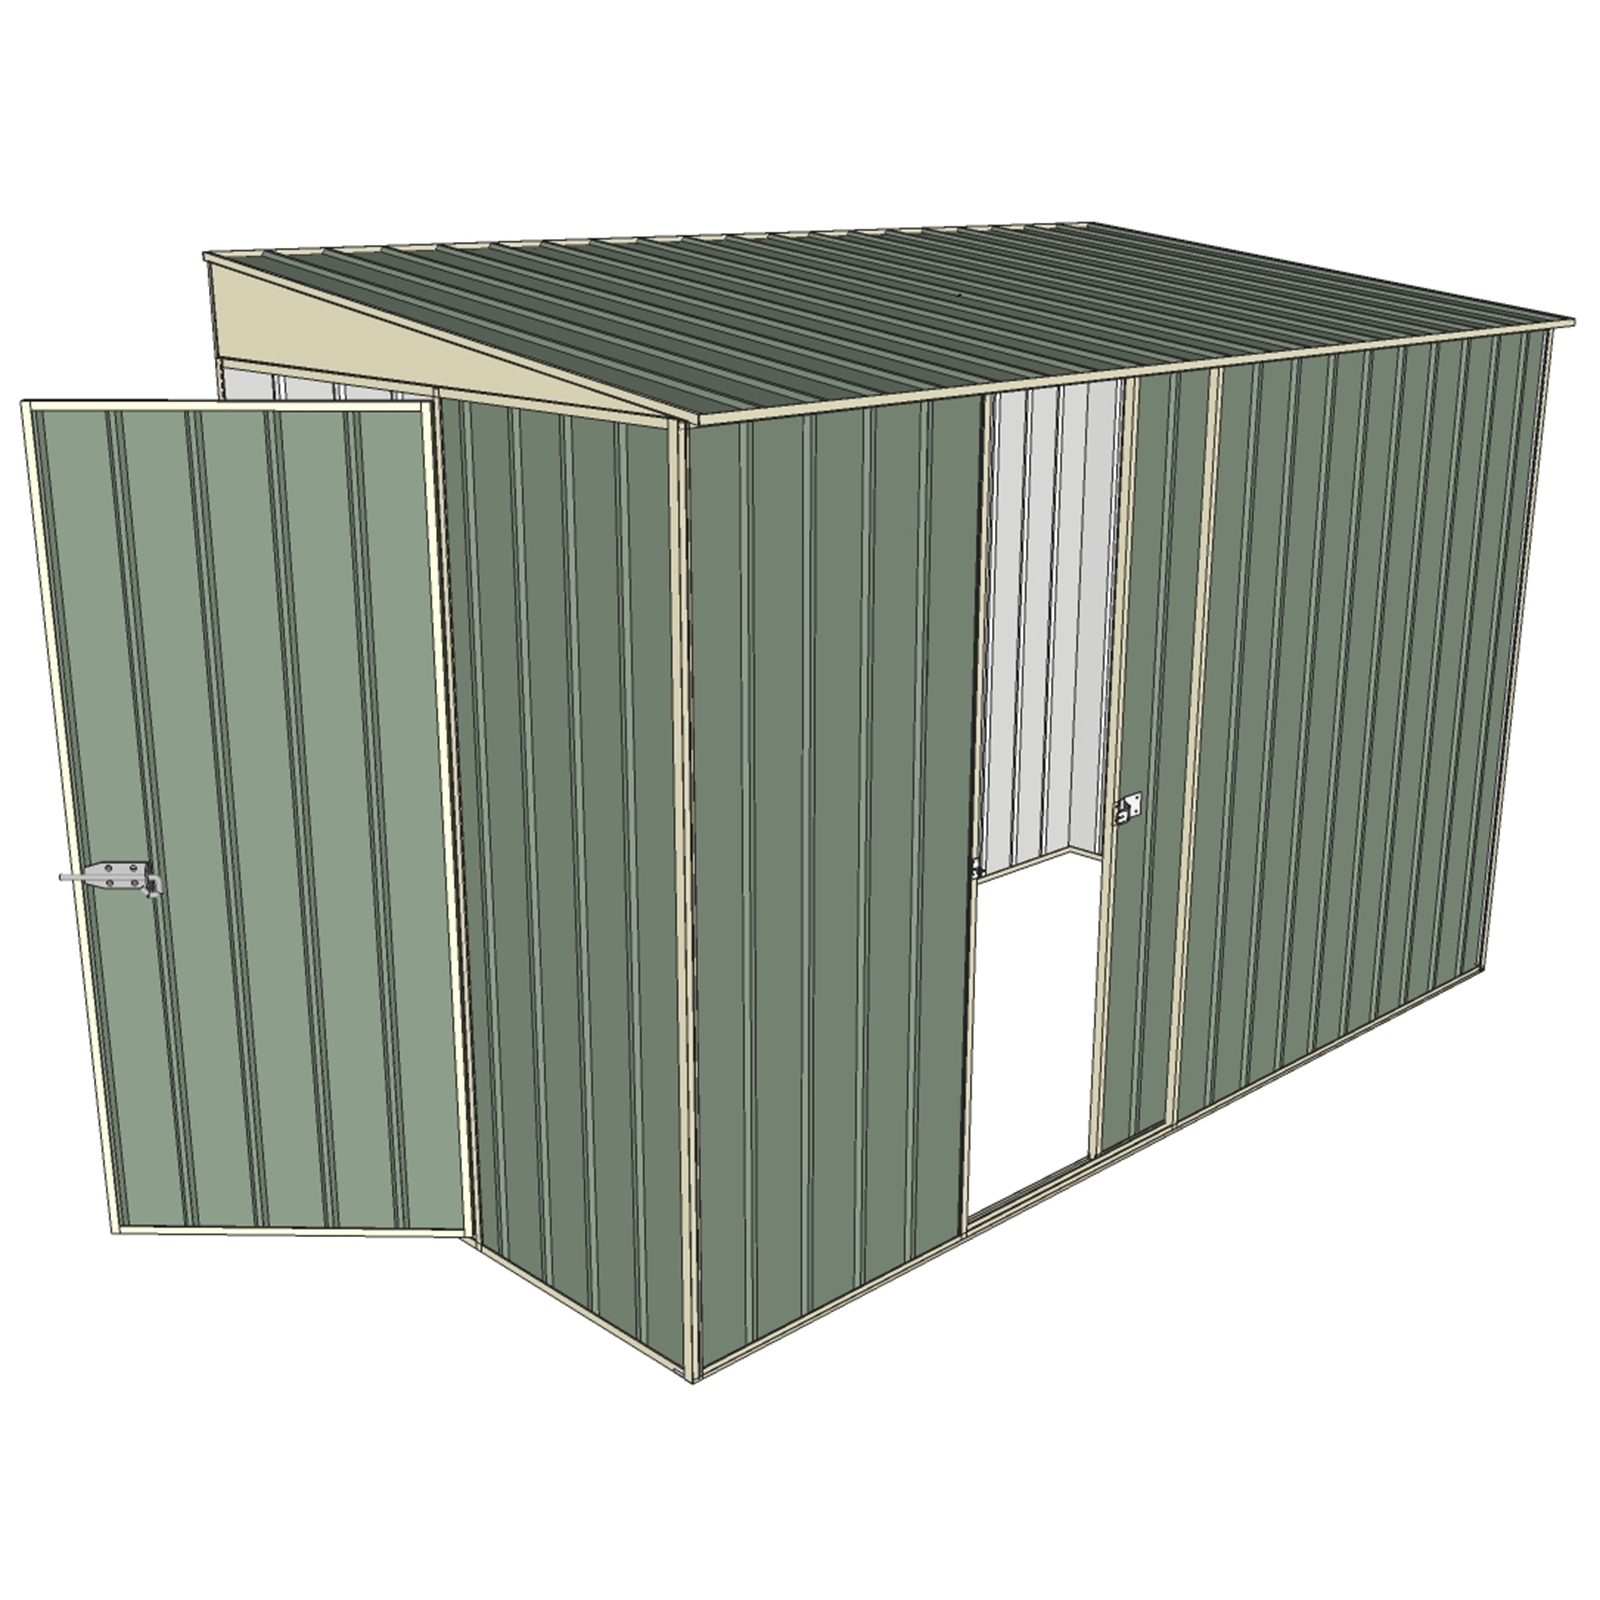 Build-a-Shed 1.5 x 3 x 2m Hinged Door Tunnel Shed with Hinged Side Door - Green